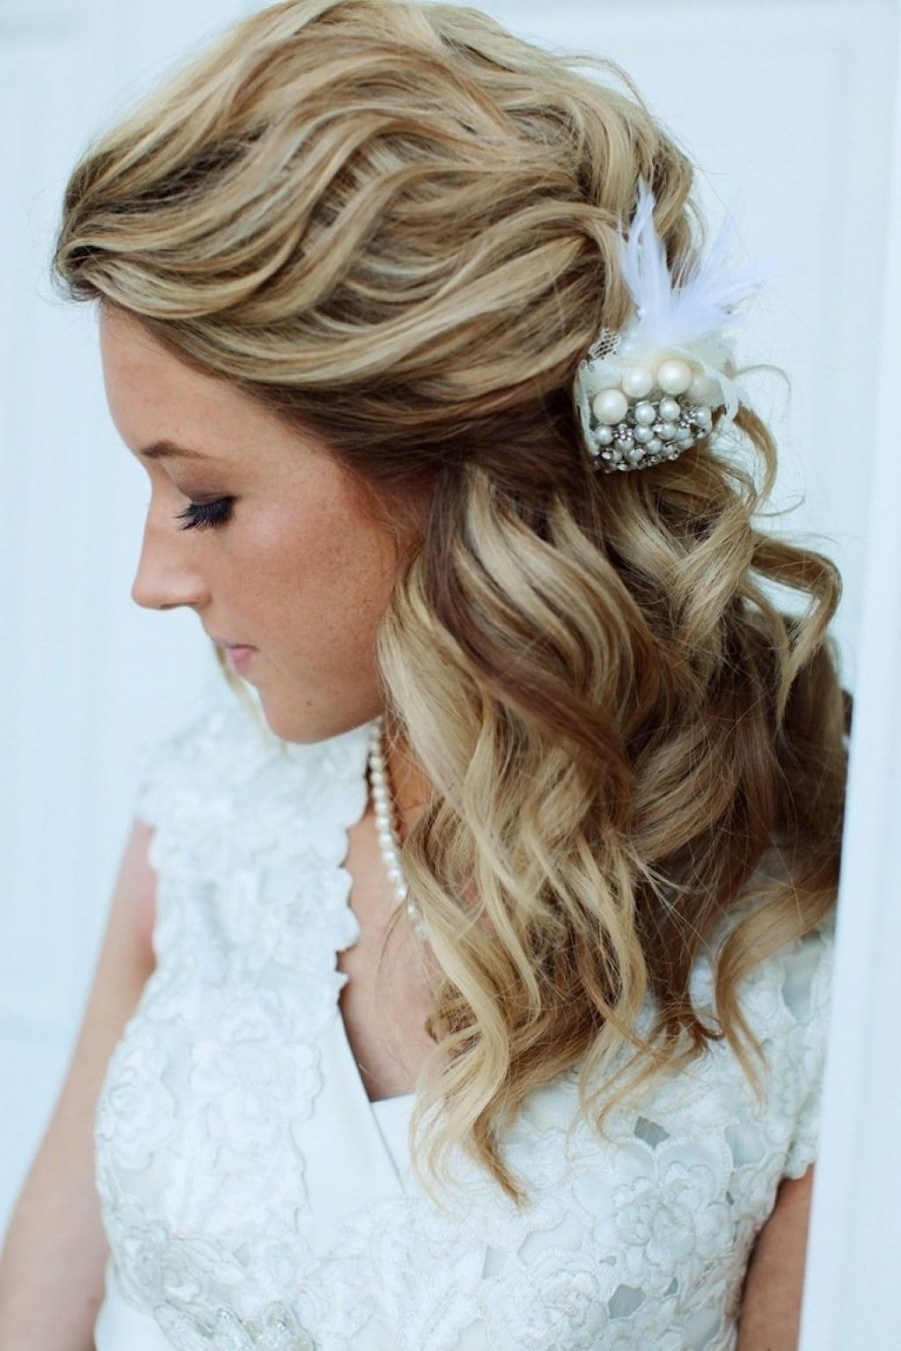 √ 24+ Awesome Wedding Hairstyles For Shoulder Length Hair: Cute For Most Recently Released Wedding Hairstyles For Medium Length Hair (View 1 of 15)